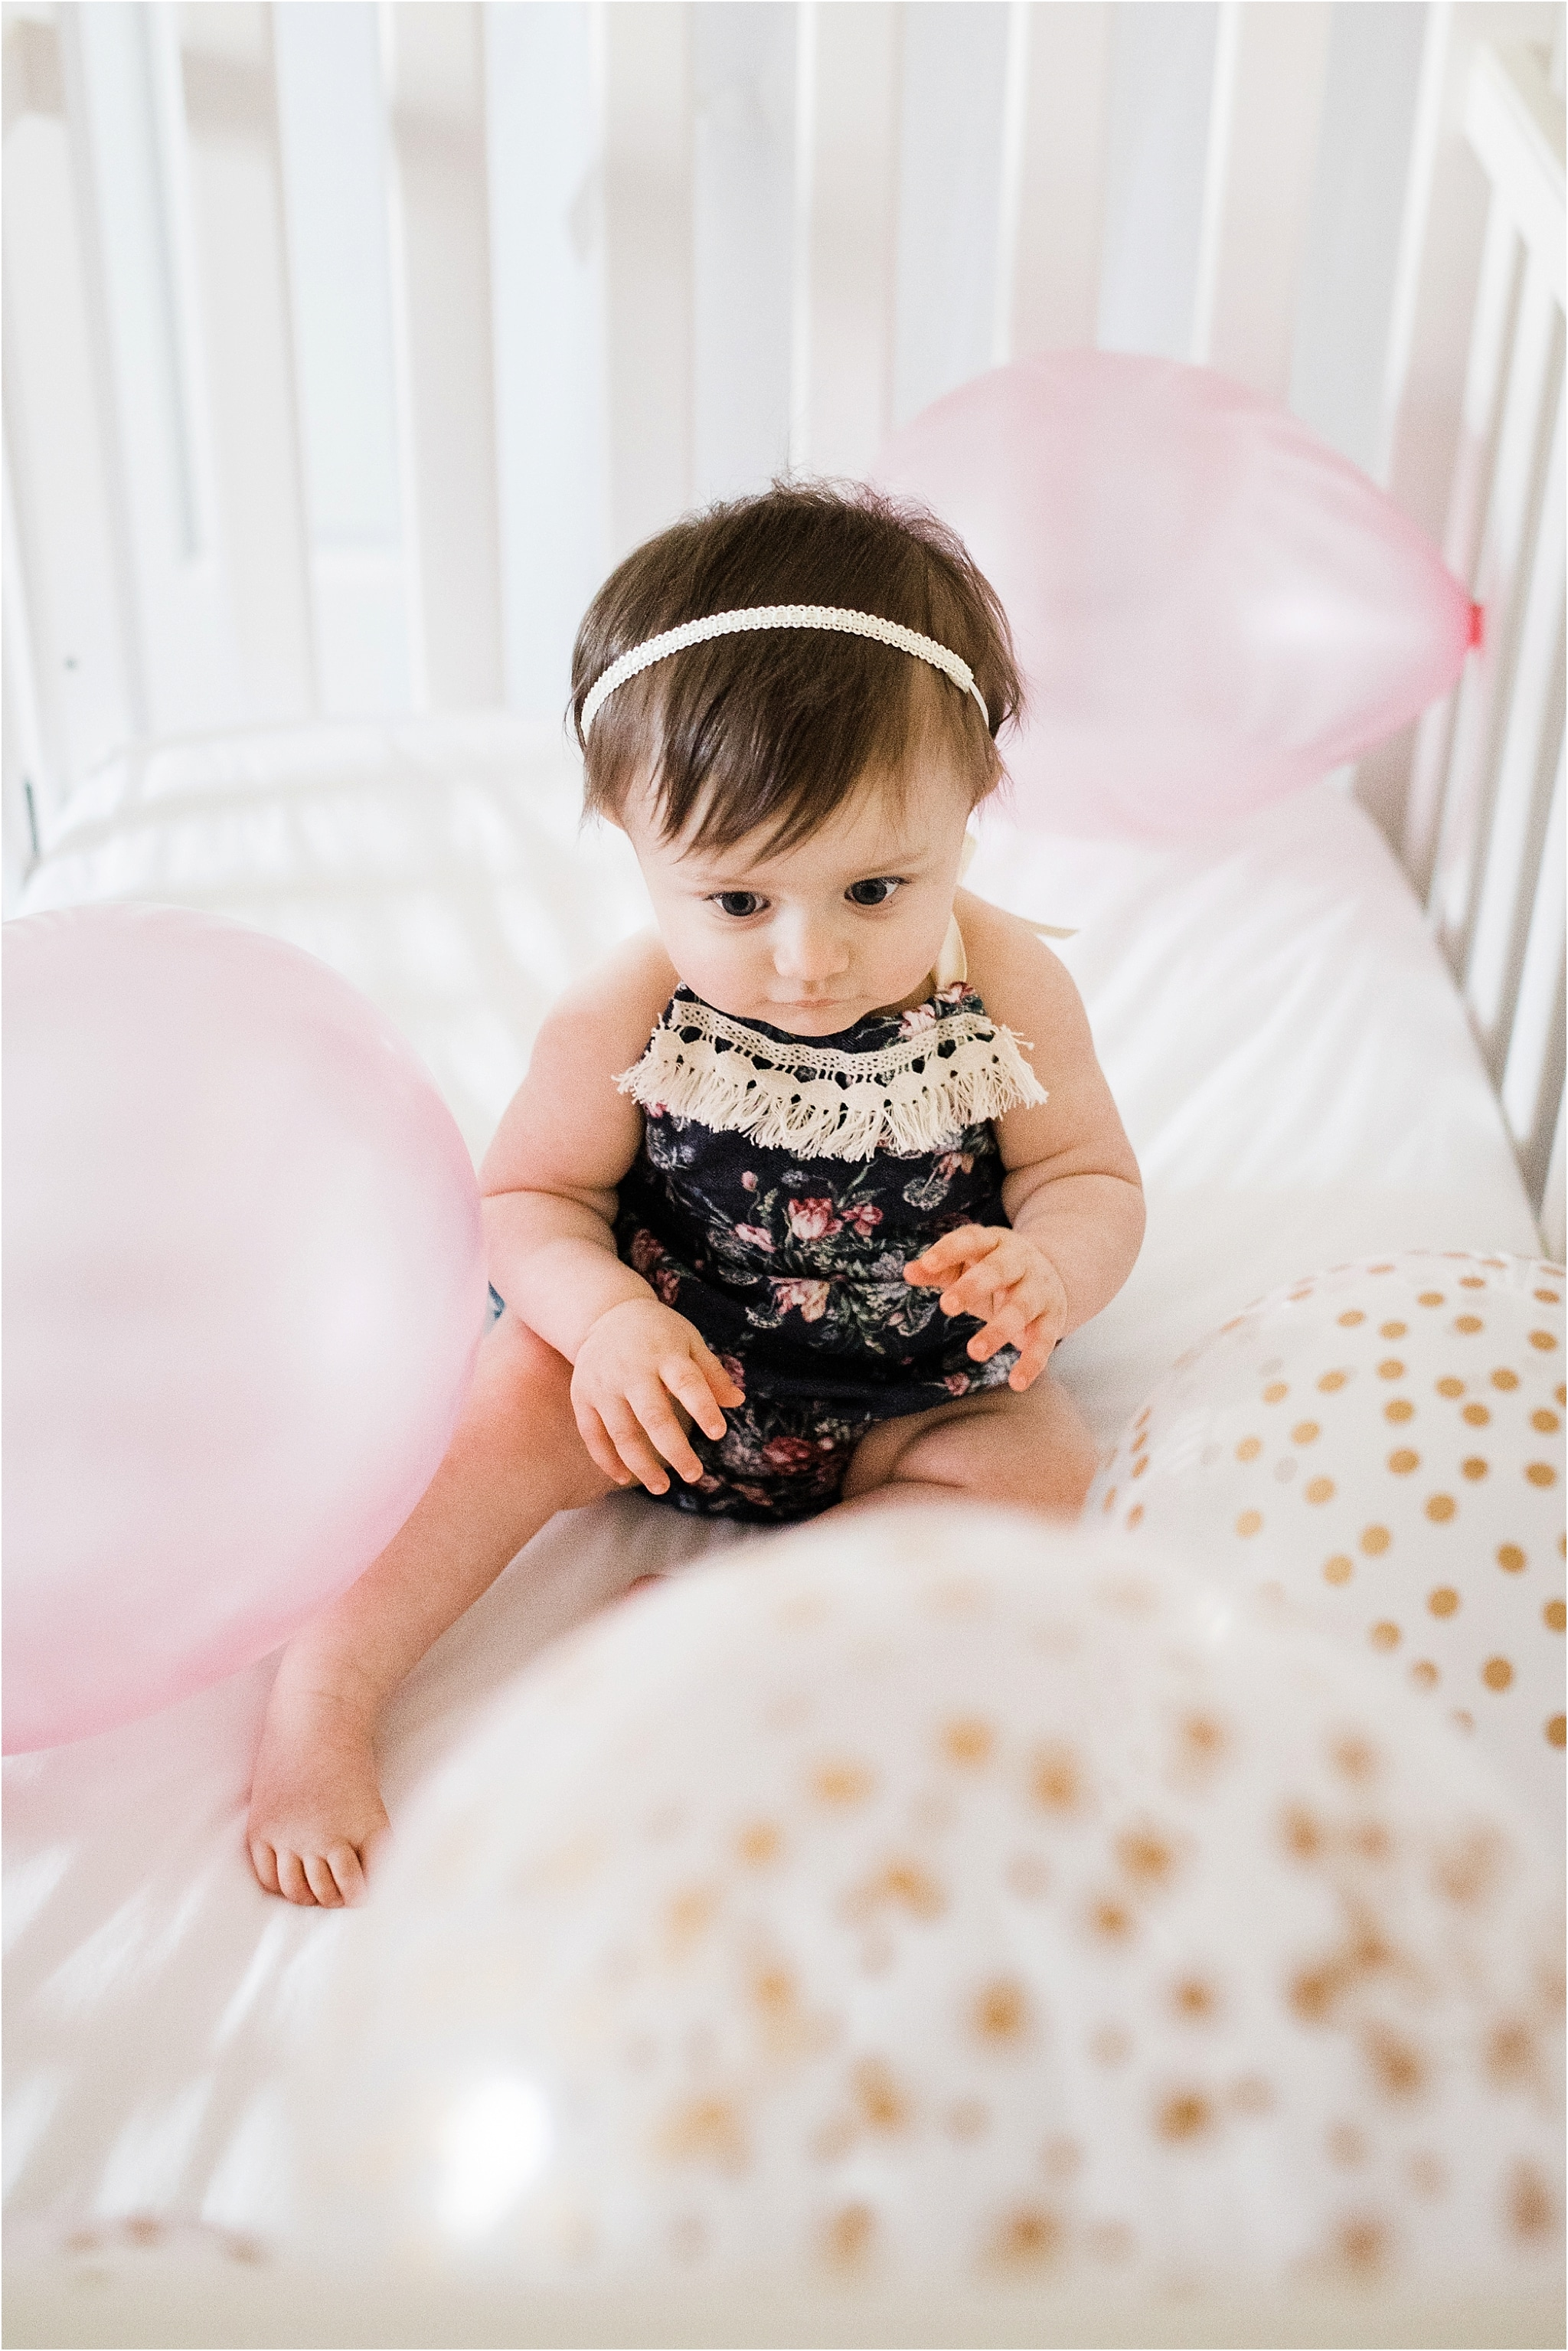 ONE YEAR OLD GIRL IN FLORAL ROMPER PHOTOS IN NURSERY WITH BALLOONS